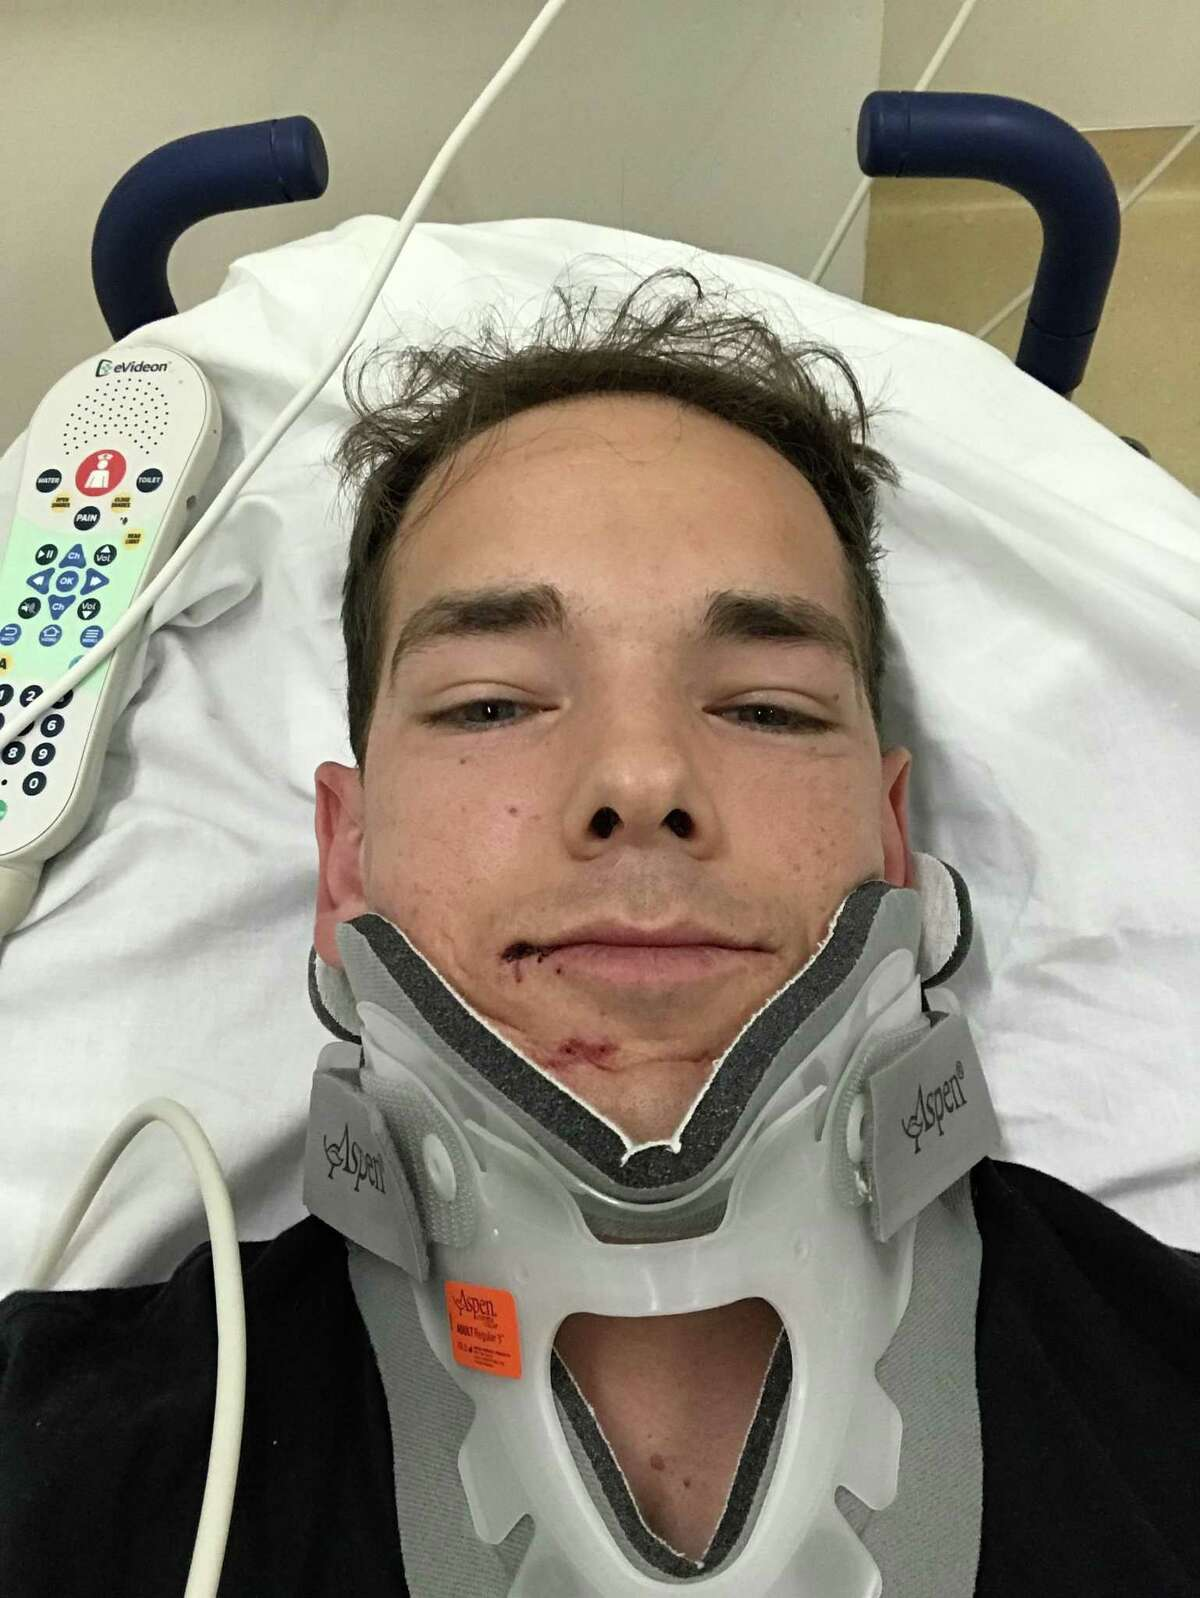 Tyler Pousson was in a motorcycle accident last year and was taken to S.F. General with what turned out to be just